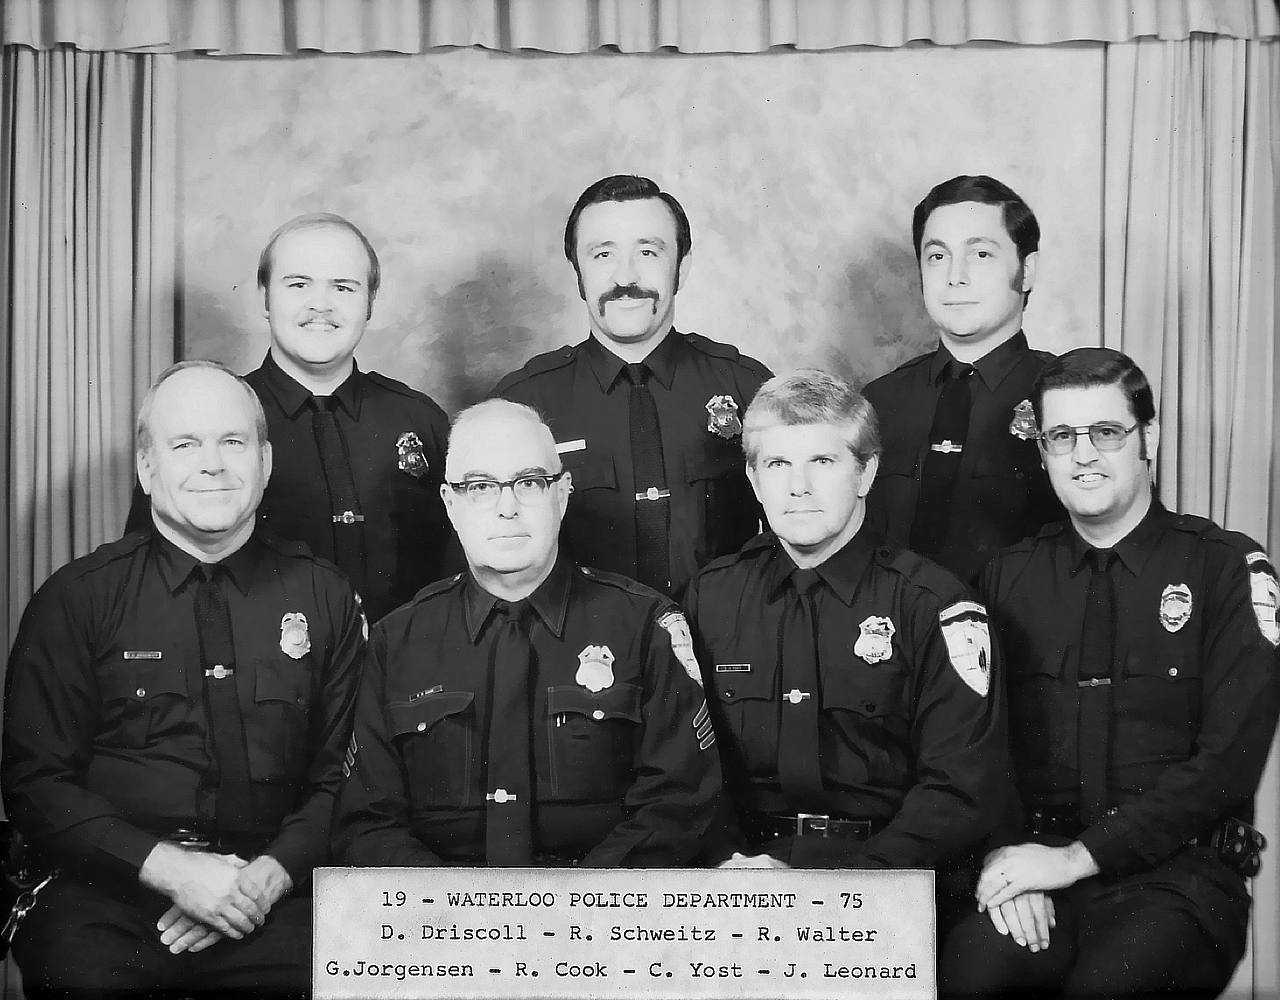 History | Waterloo Police Department